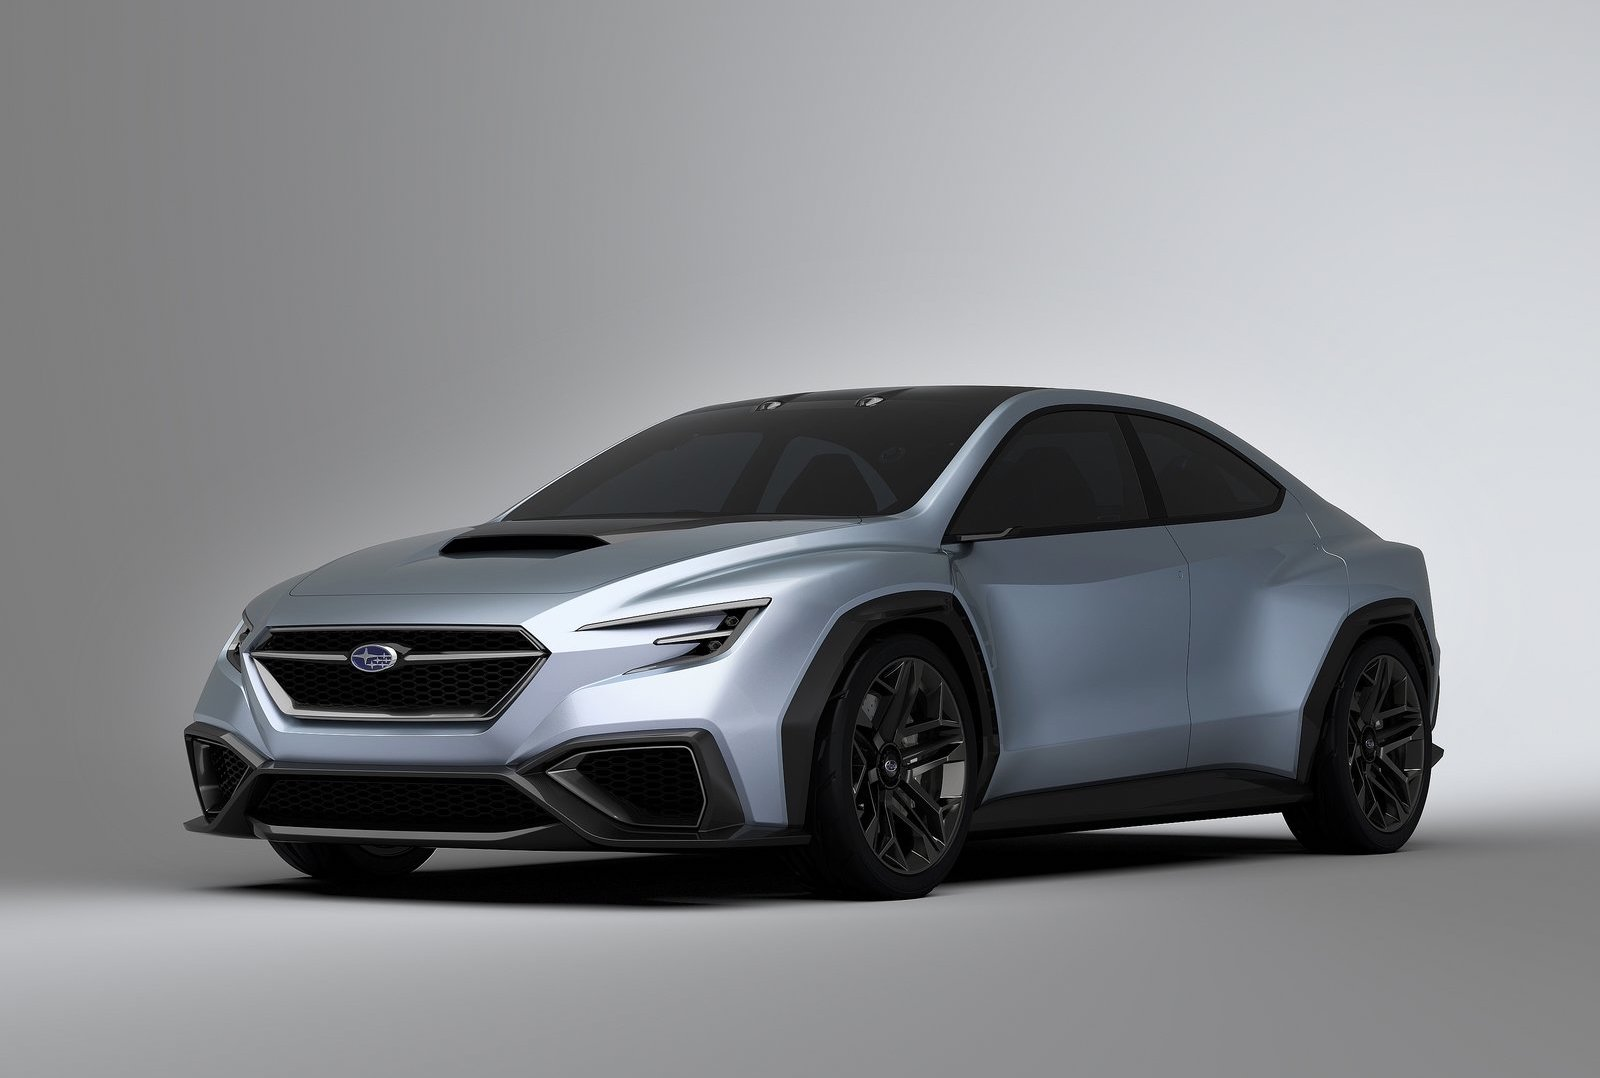 2020 Subaru Wrx Sti Likely Feature Hybrid Powertrain Report 1515 furthermore 2014 Nissan Tiida Review also 2016 Cadillac Escalade Overview C24904 also Mercedes Benz glc 2016 additionally Watch. on 2010 mazda coupe